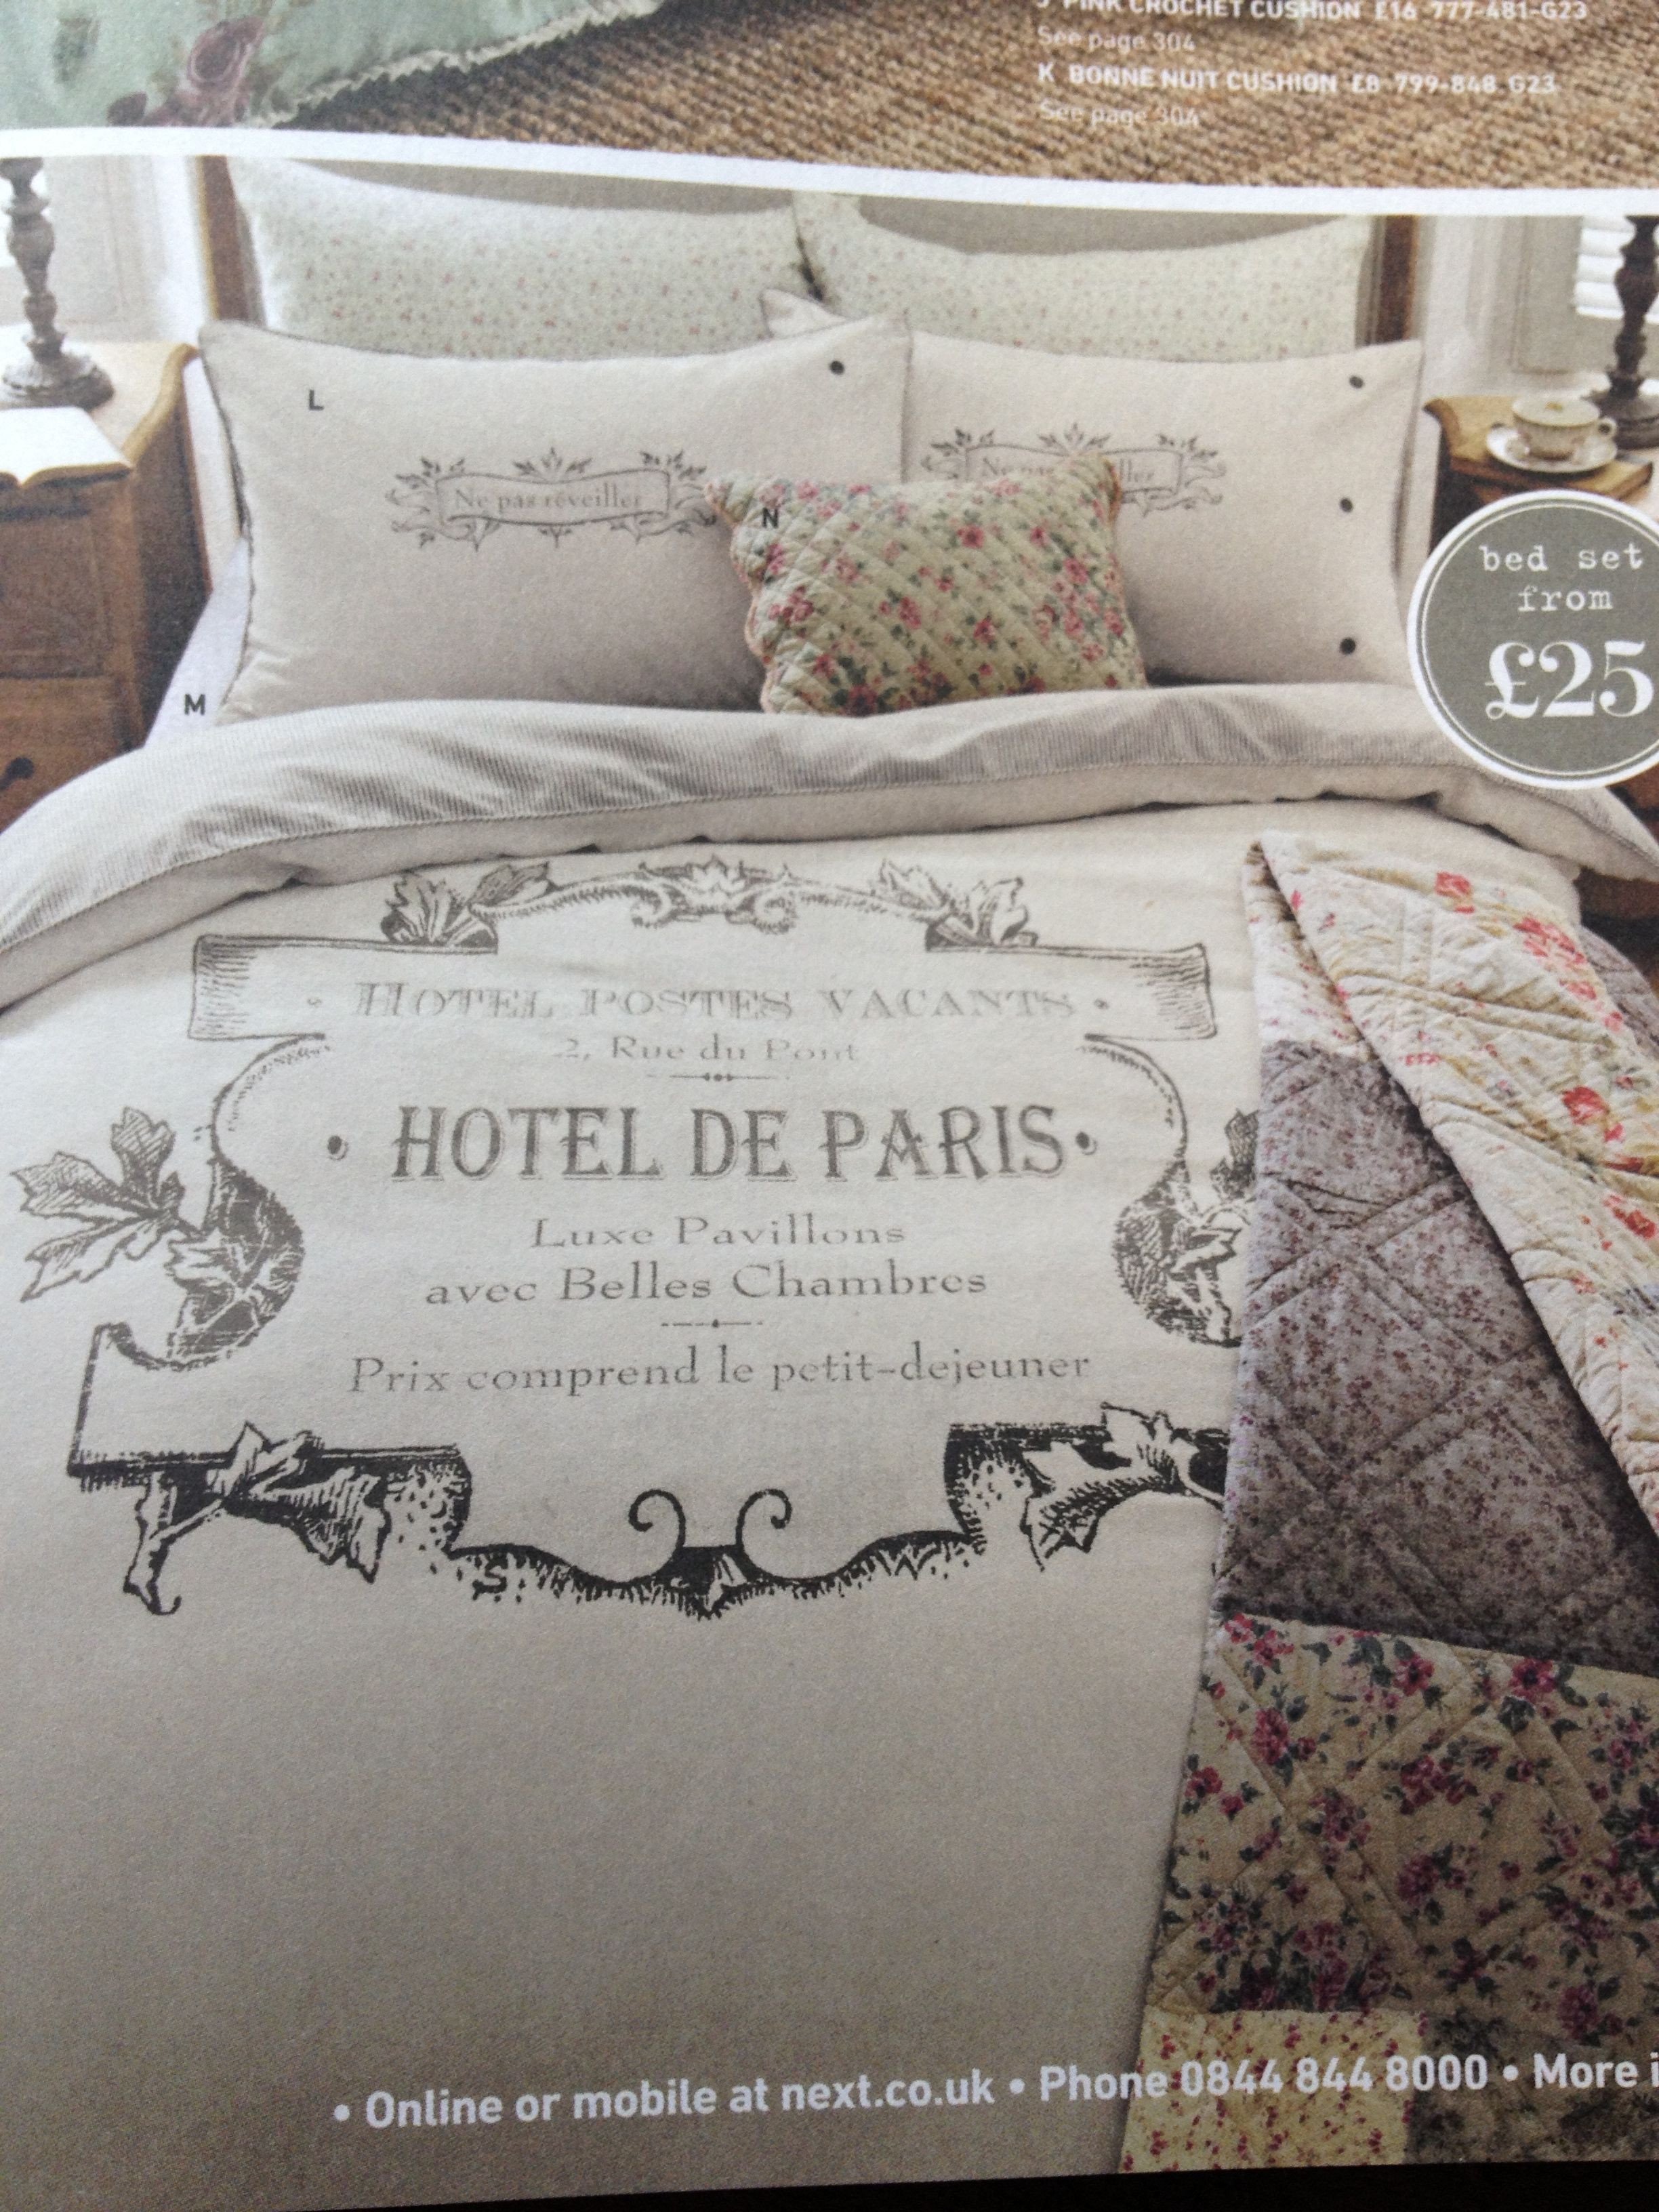 Paris Bed Set With French Decor French Inspired Bedding Bed Linens Luxury Bedding Inspiration